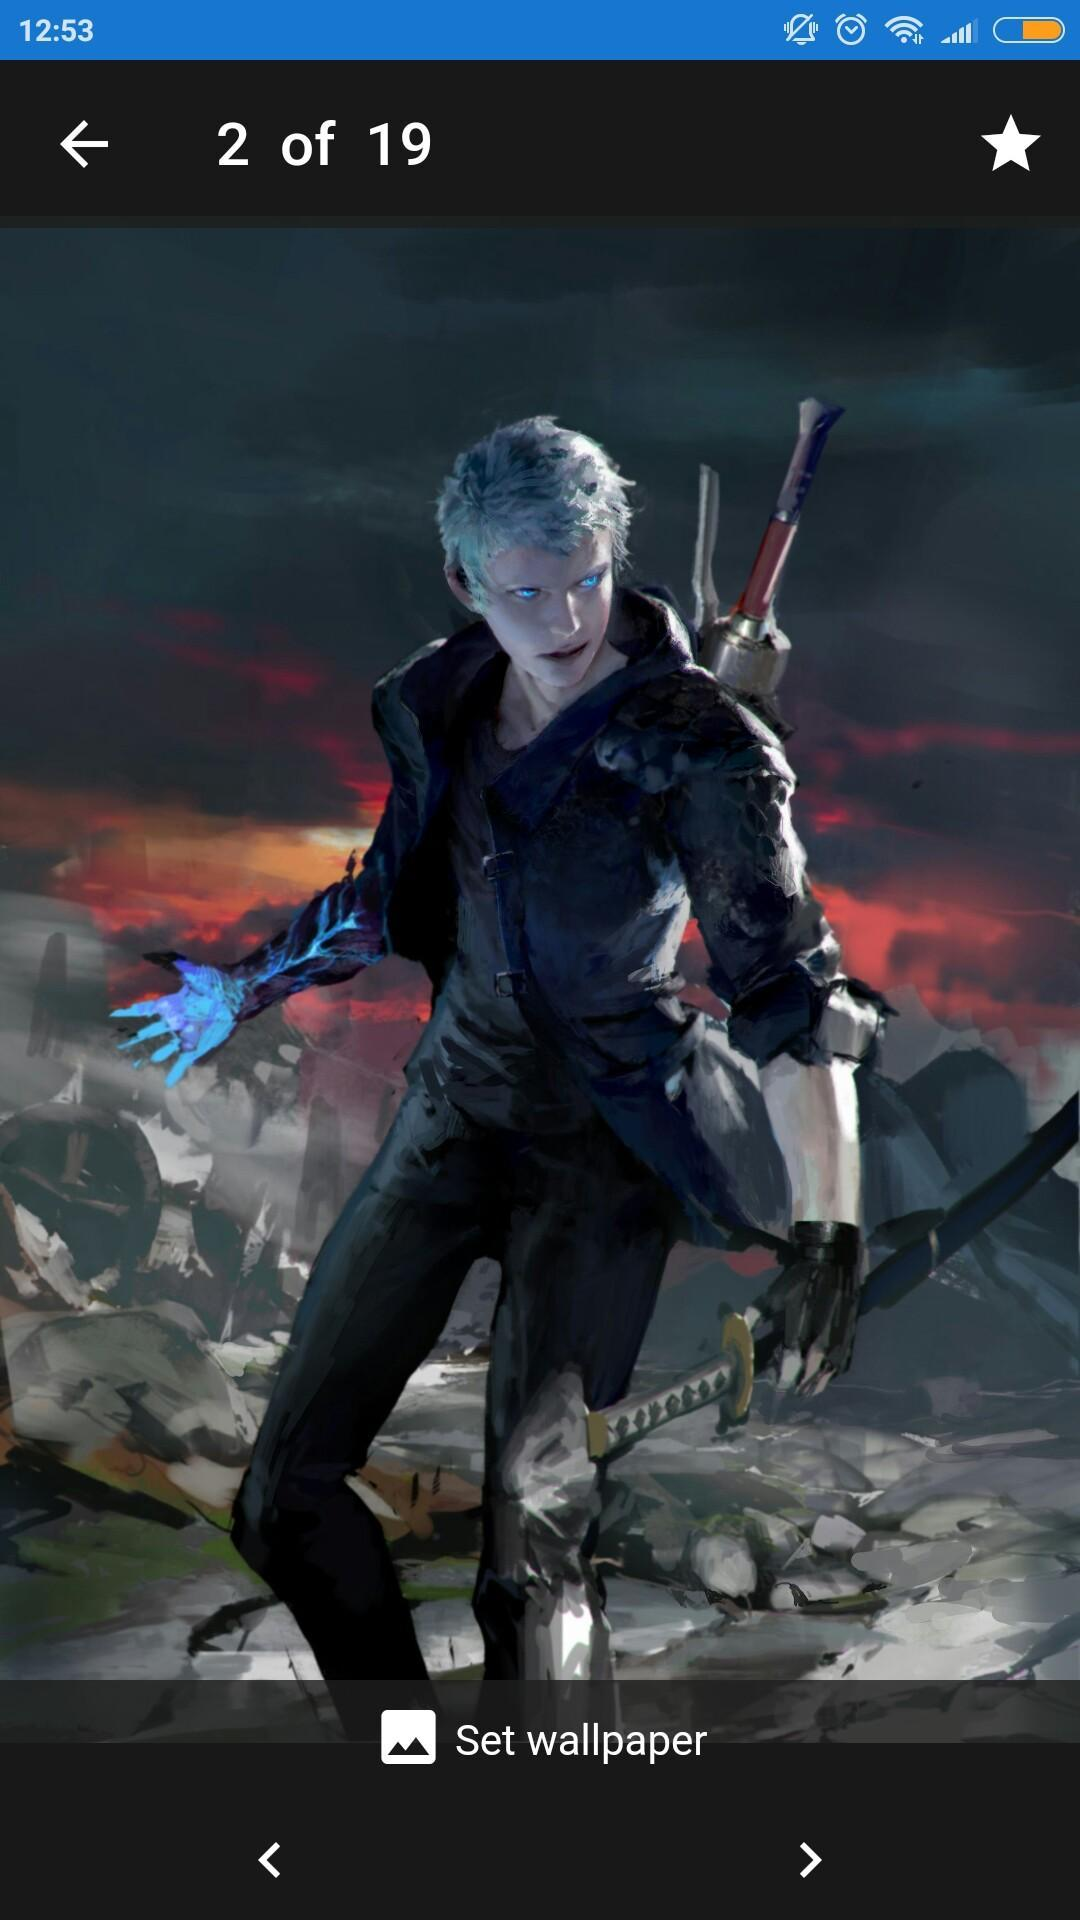 Wallpapers And Arts From Devil May Cry 5 For Android Apk Download